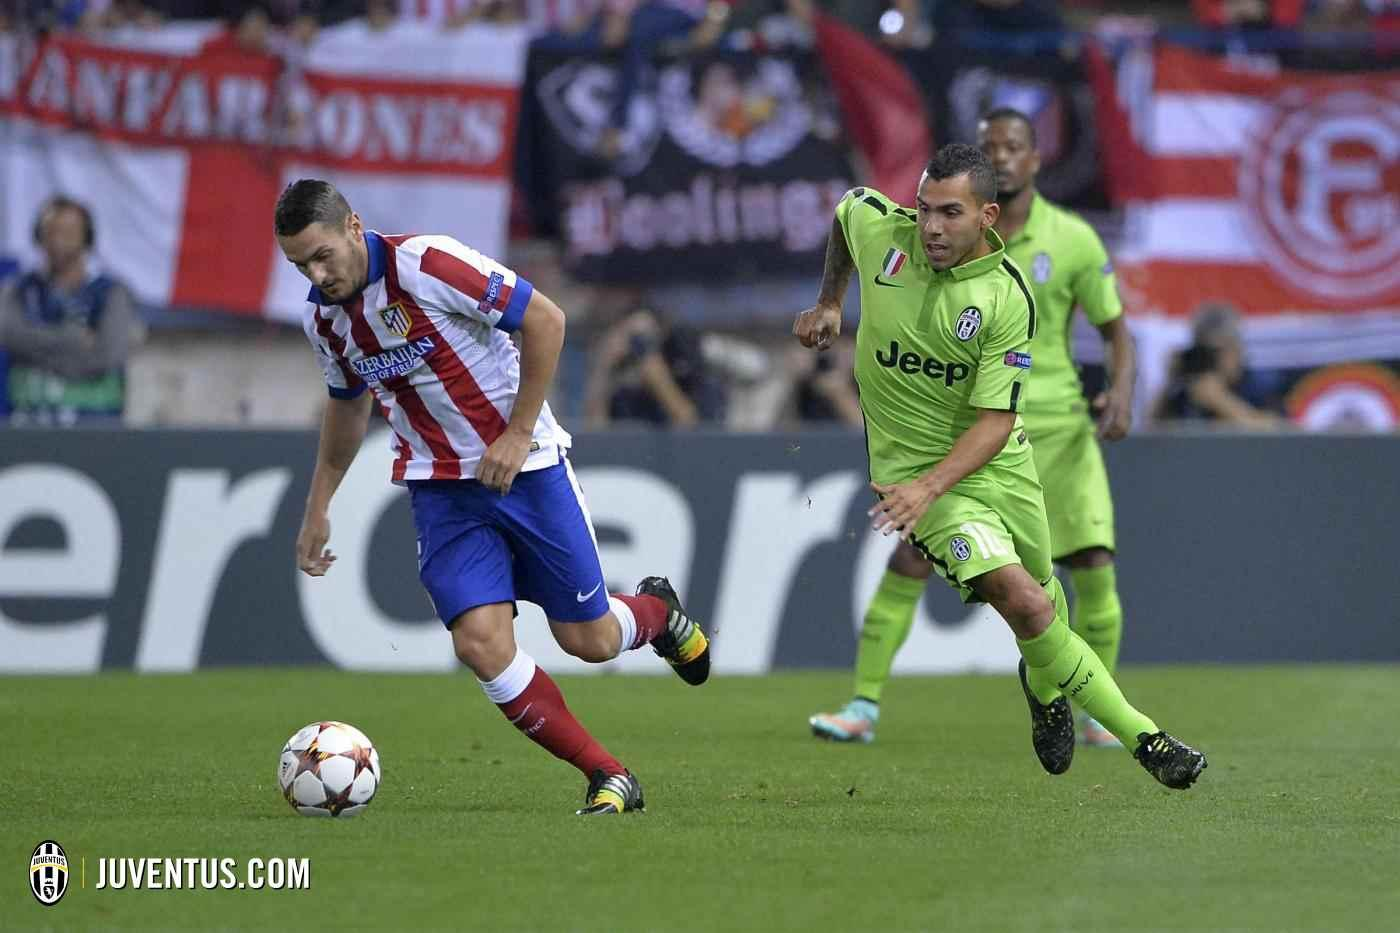 Atletico madrid juventus text commentary and ucl scores 2014 vavel